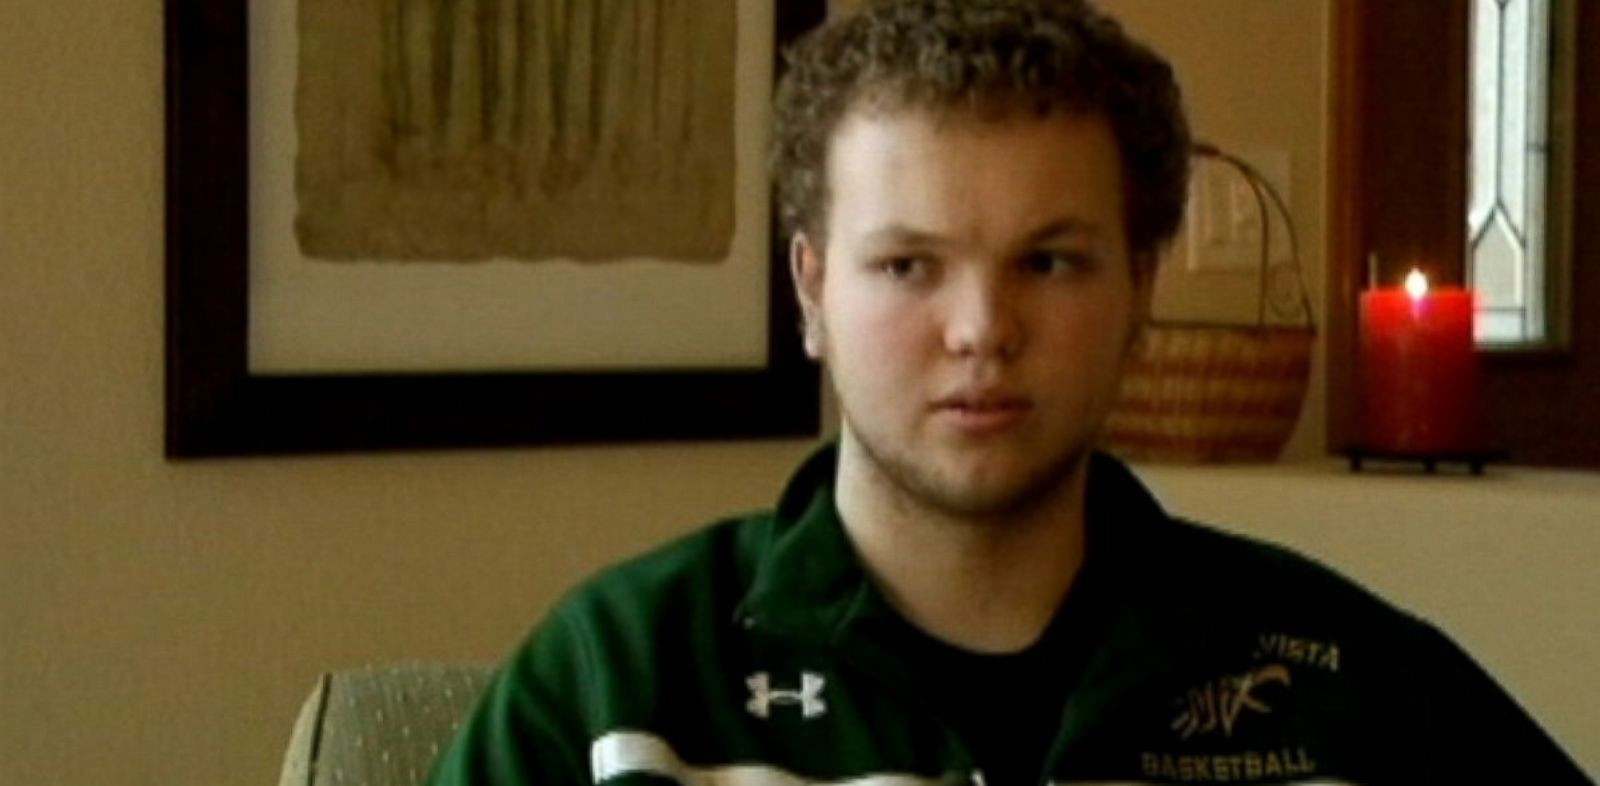 PHOTO: Mountain Vista High School student Bailey Roby, who has two prosthetic legs.